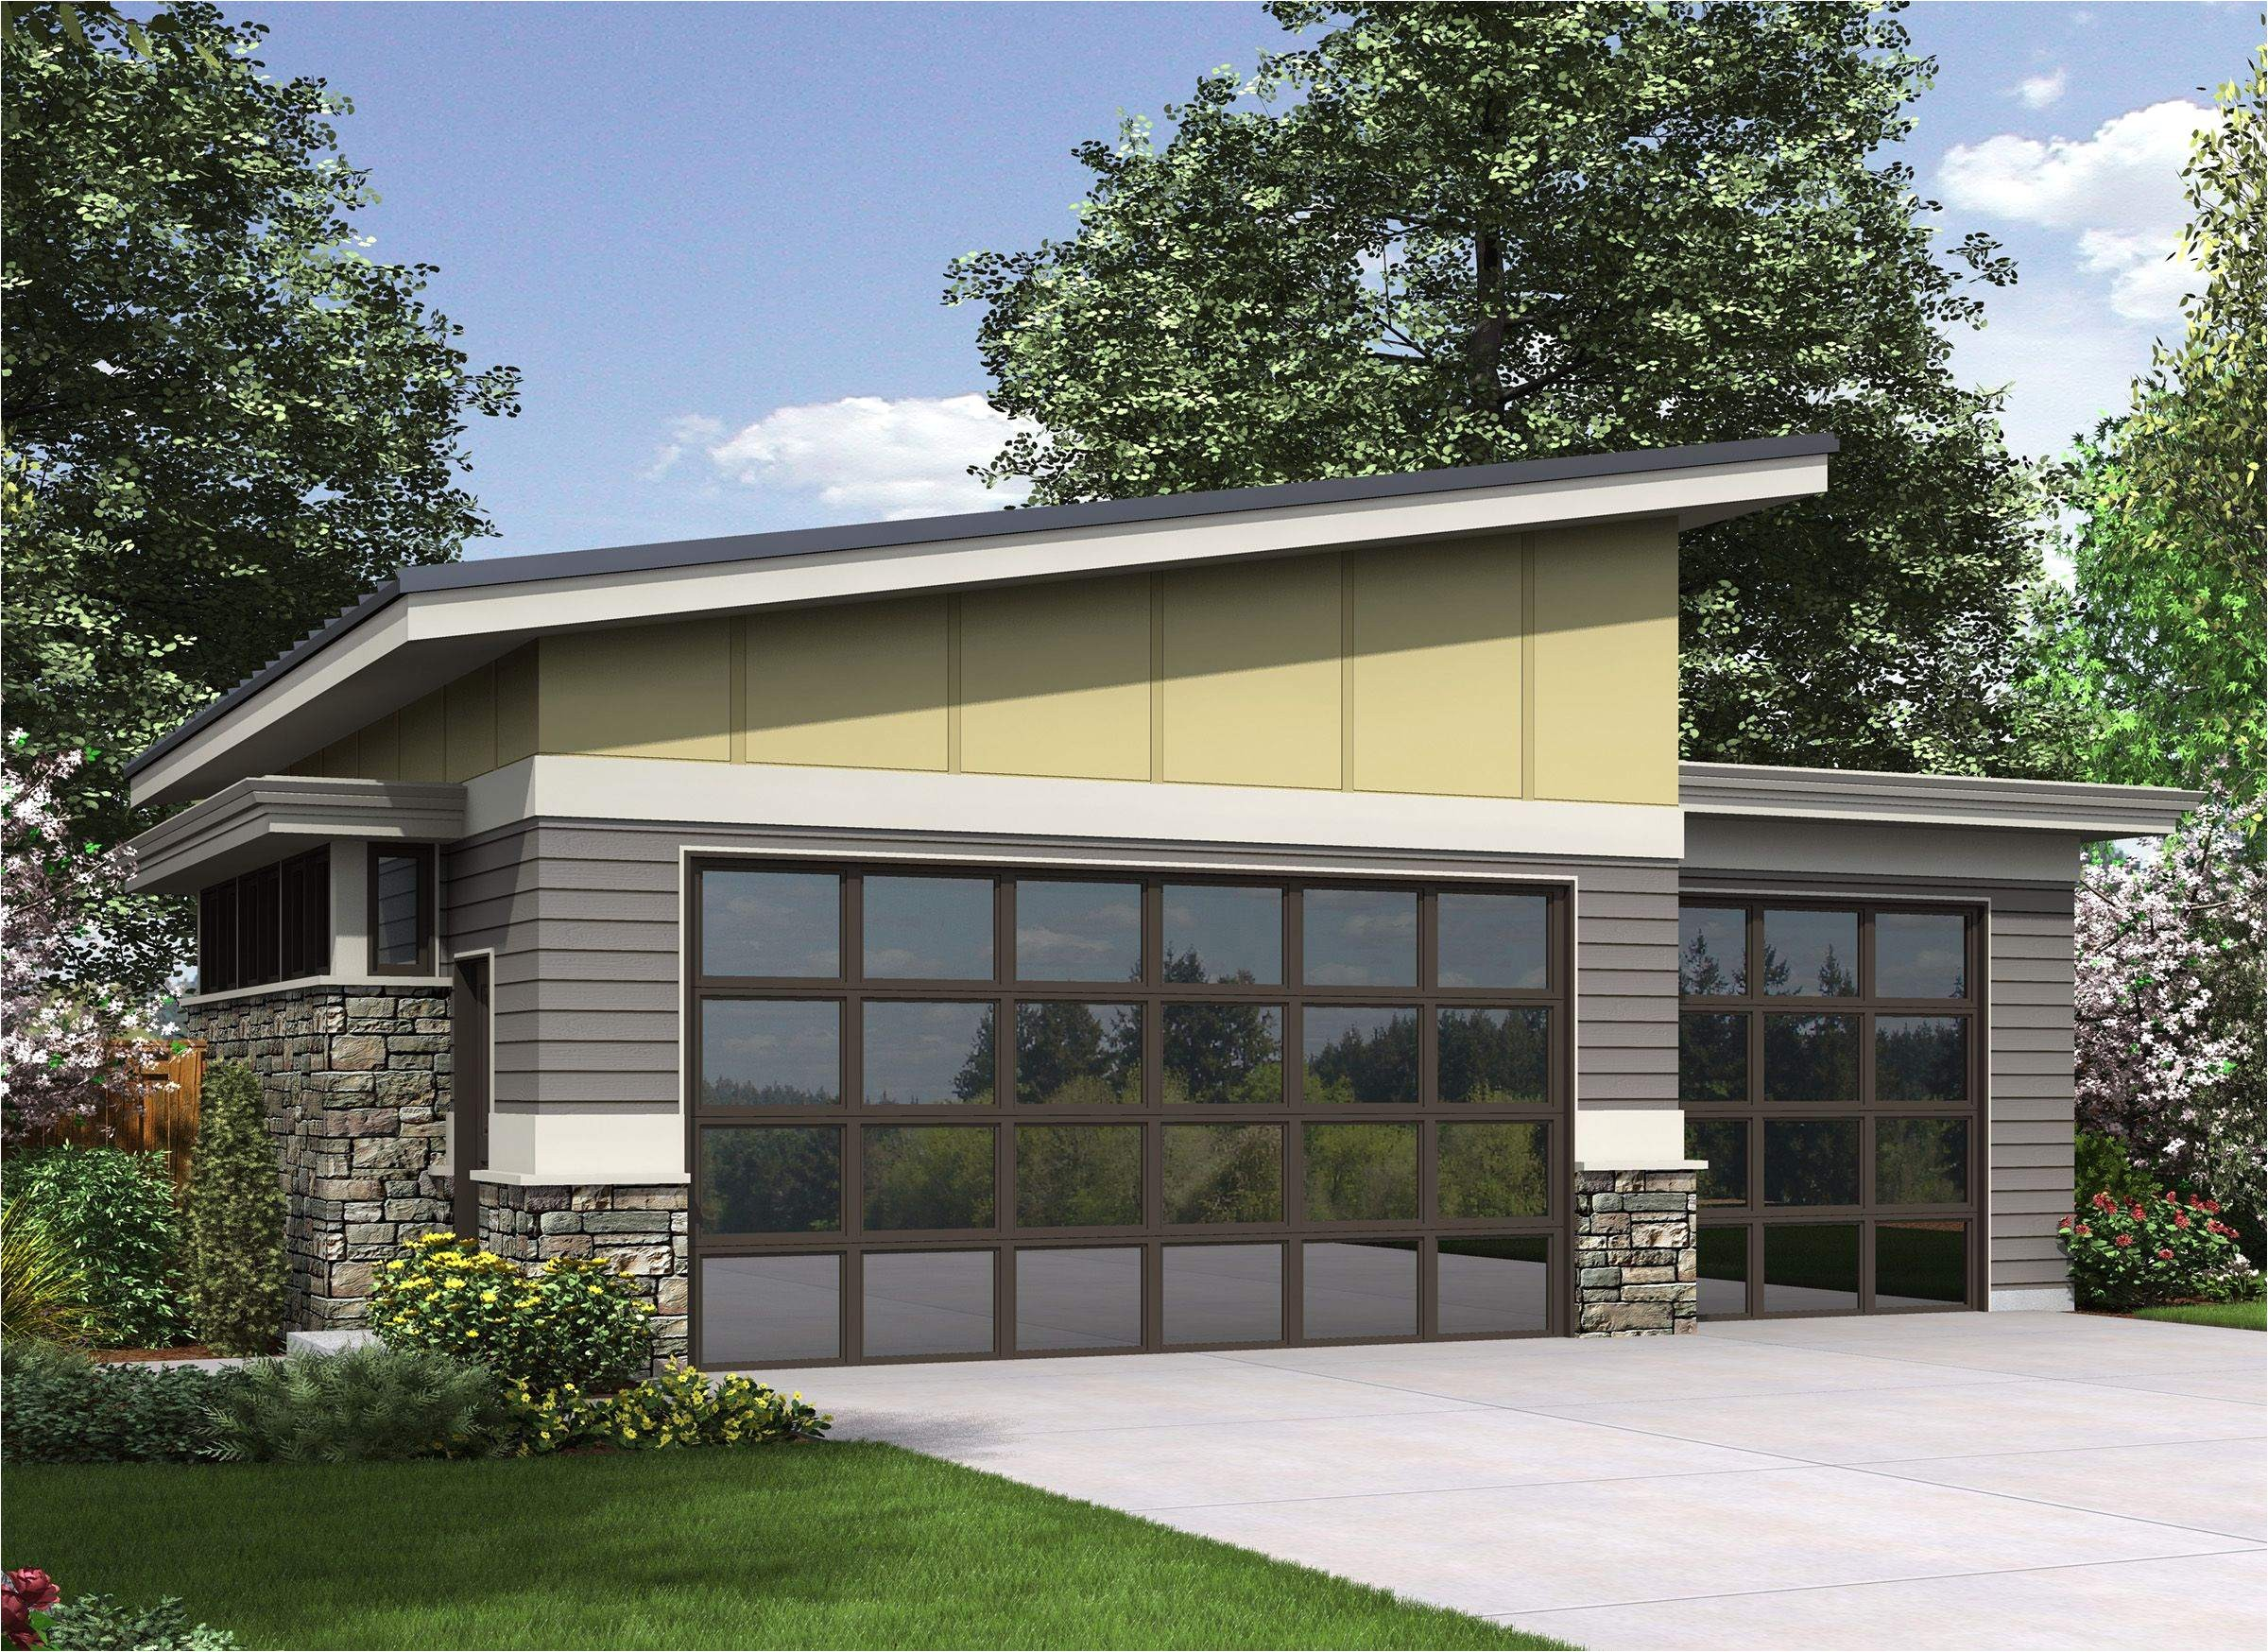 home hardware garage plans prices inspirational home depot plans new two story shed plans free beautiful free floor